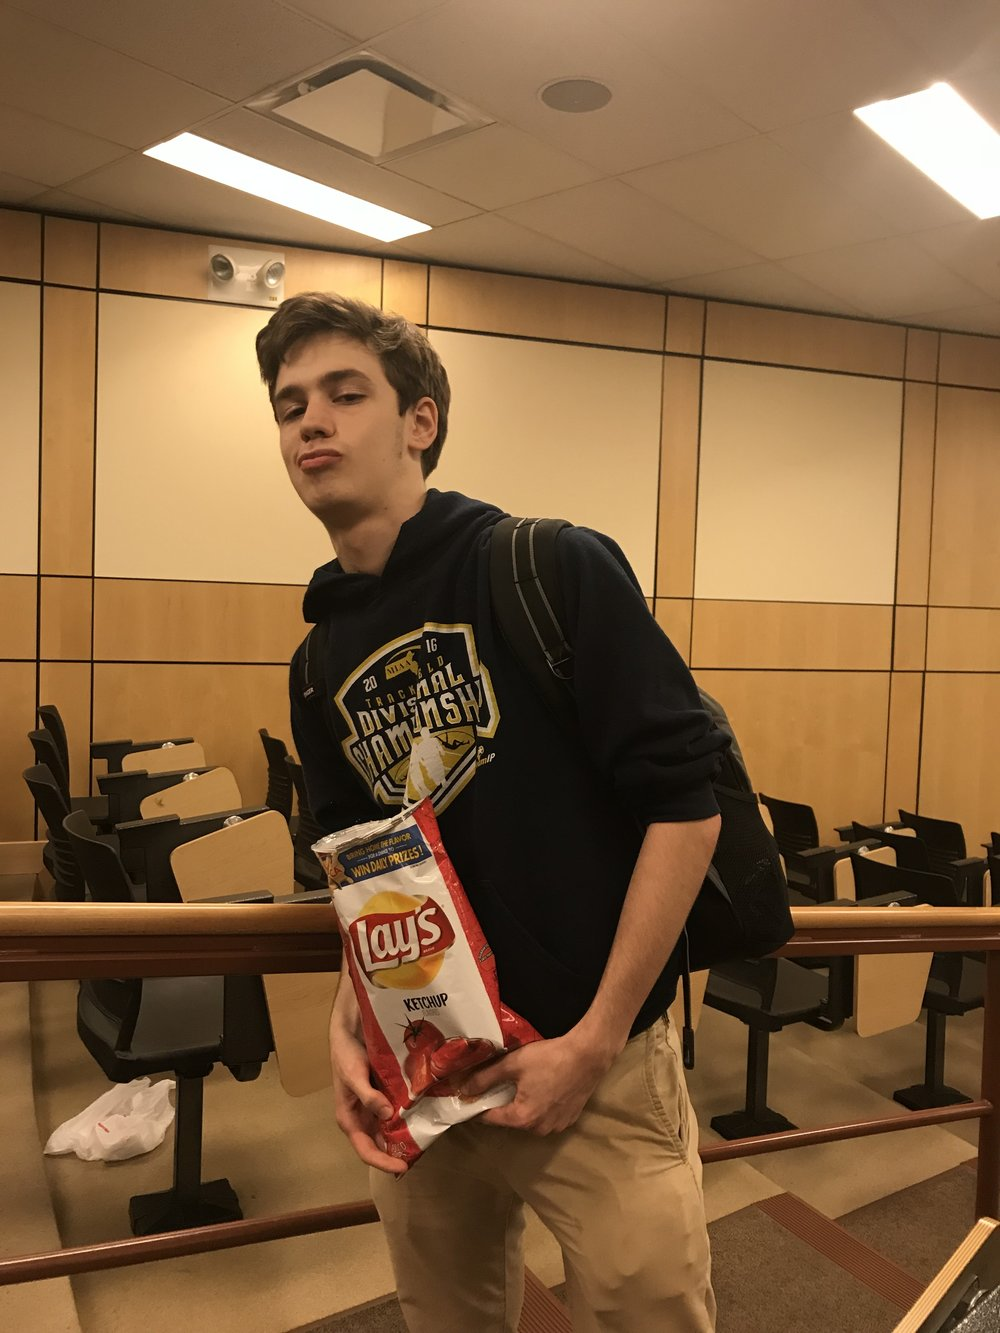 Meet Elijah Fullerton, freshman. - We needed the perfect candidate to kick off our very first Humans of the IAA post, and when we spotted Elijah across the meeting room chomping happily on his bag of chips, we just knew we needed to stop him and get his thoughts.